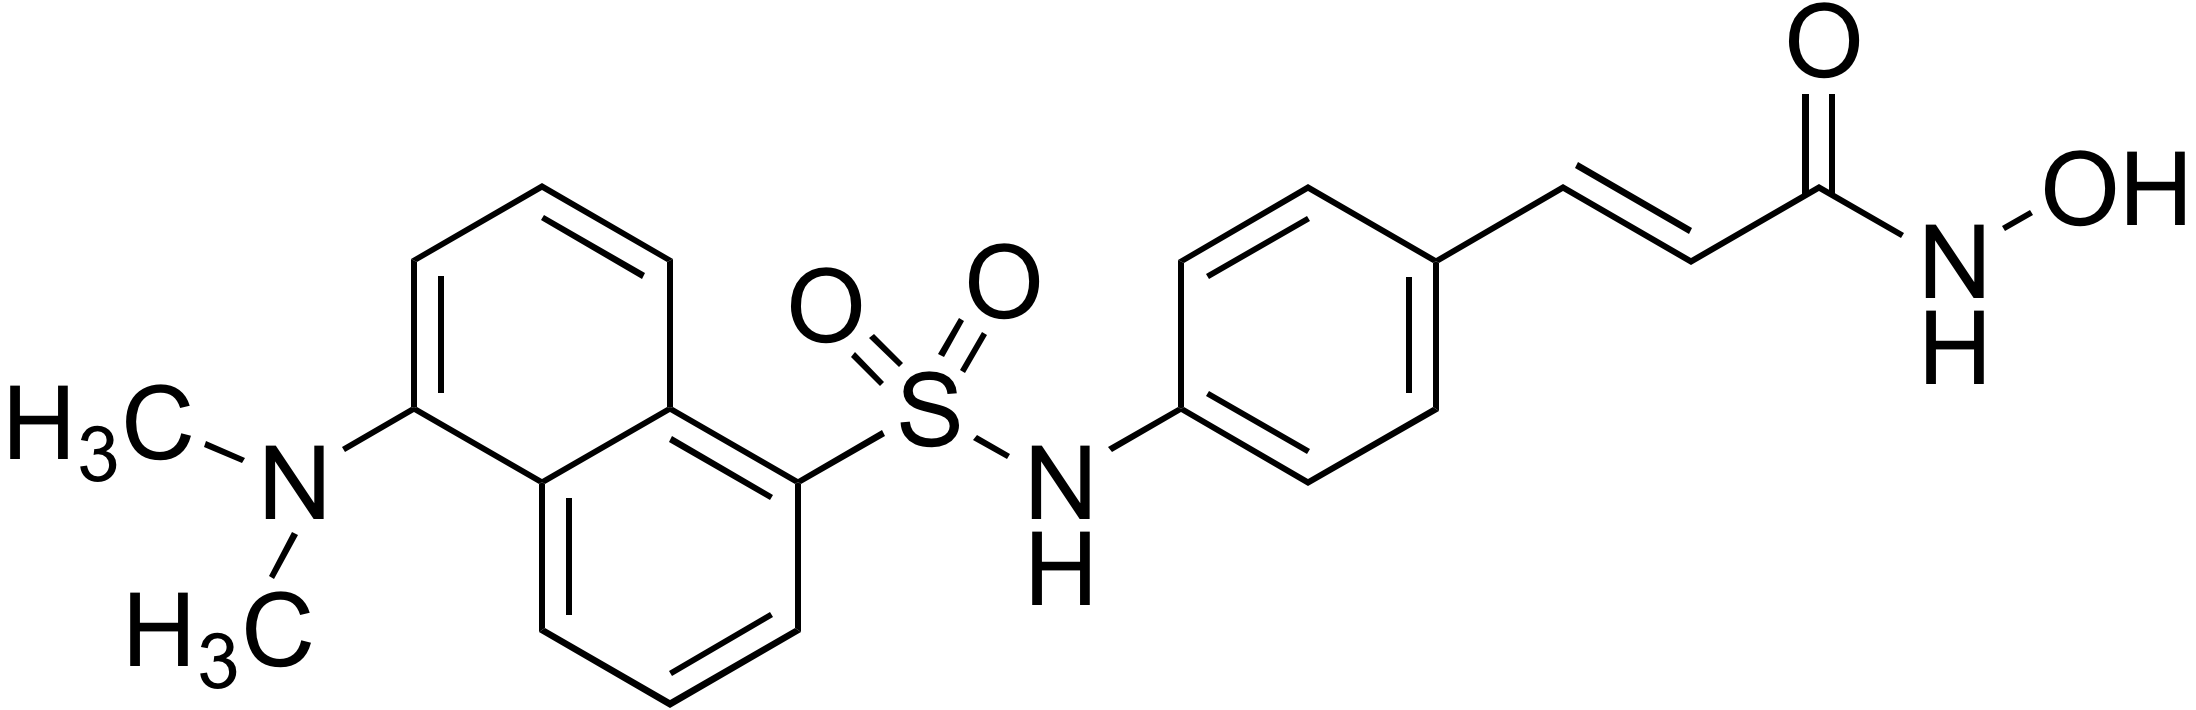 N-Hydroxy-3-[4-(dansylamino)phenyl]acrylamide